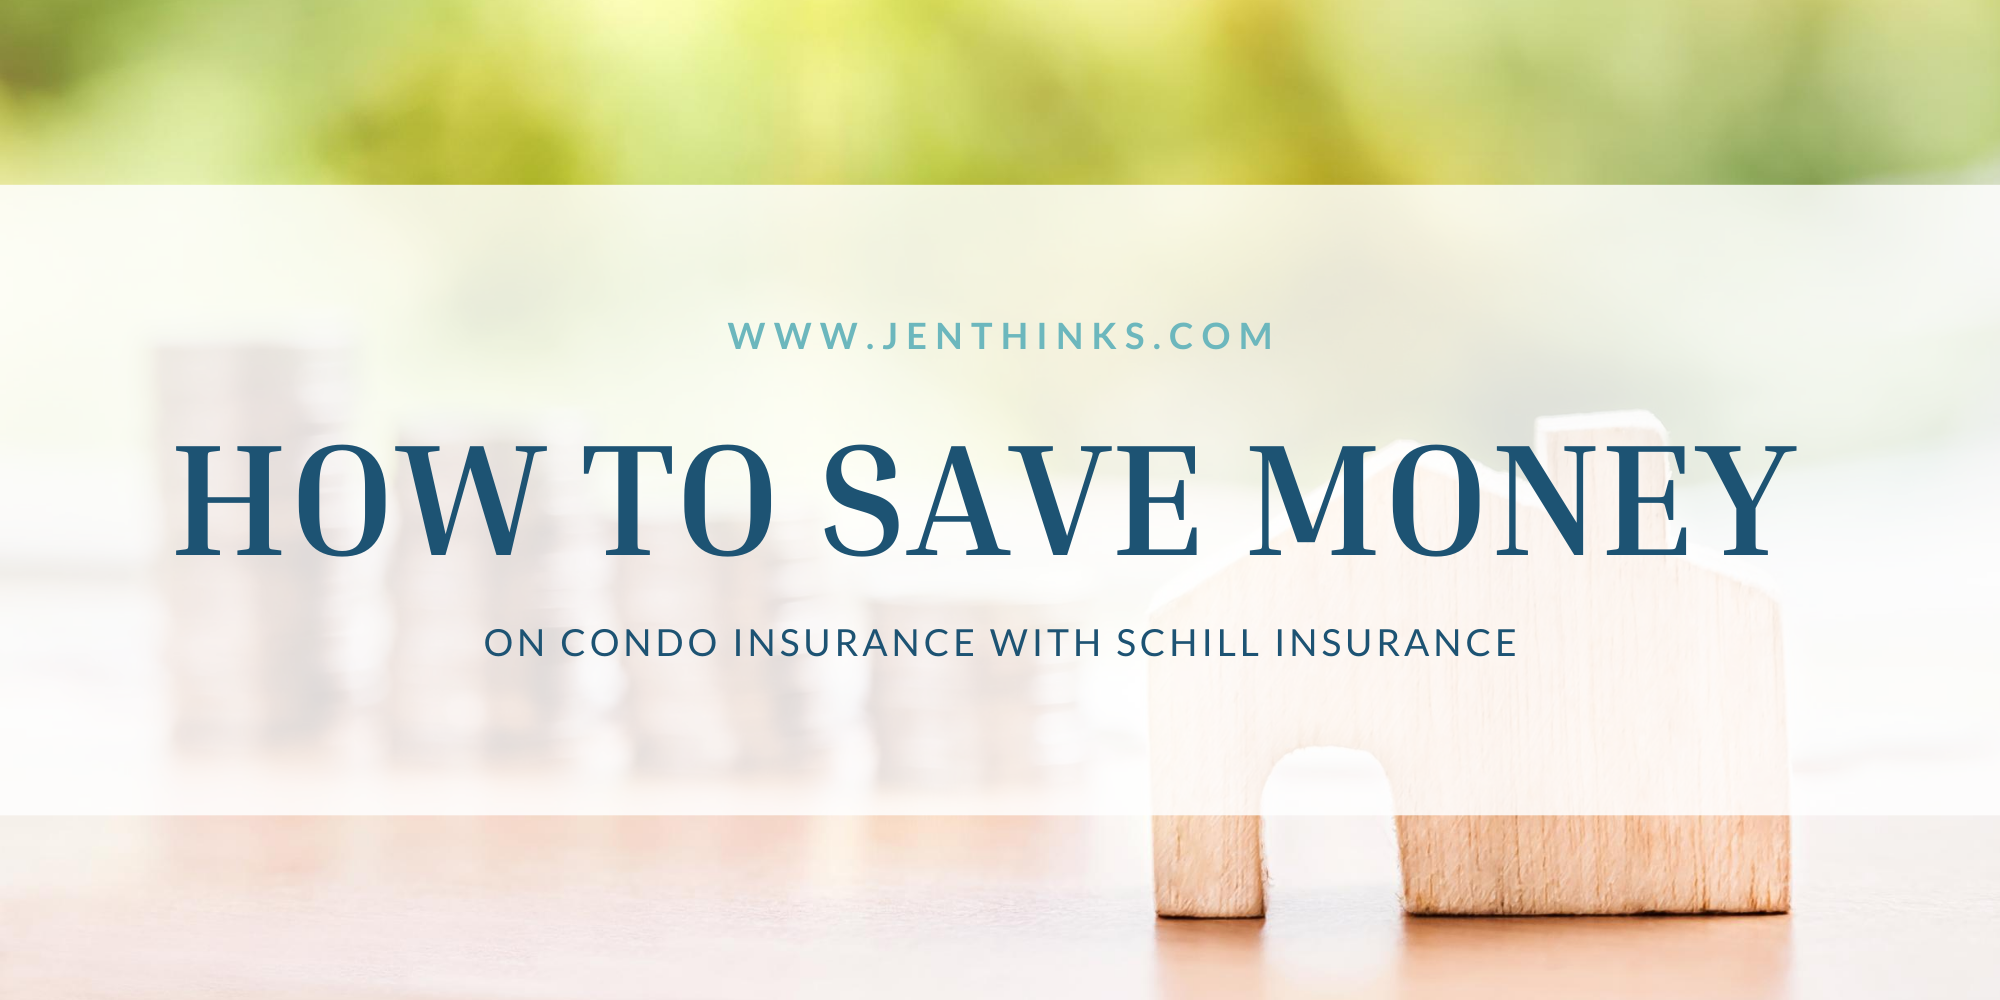 how to save money on condo insurance